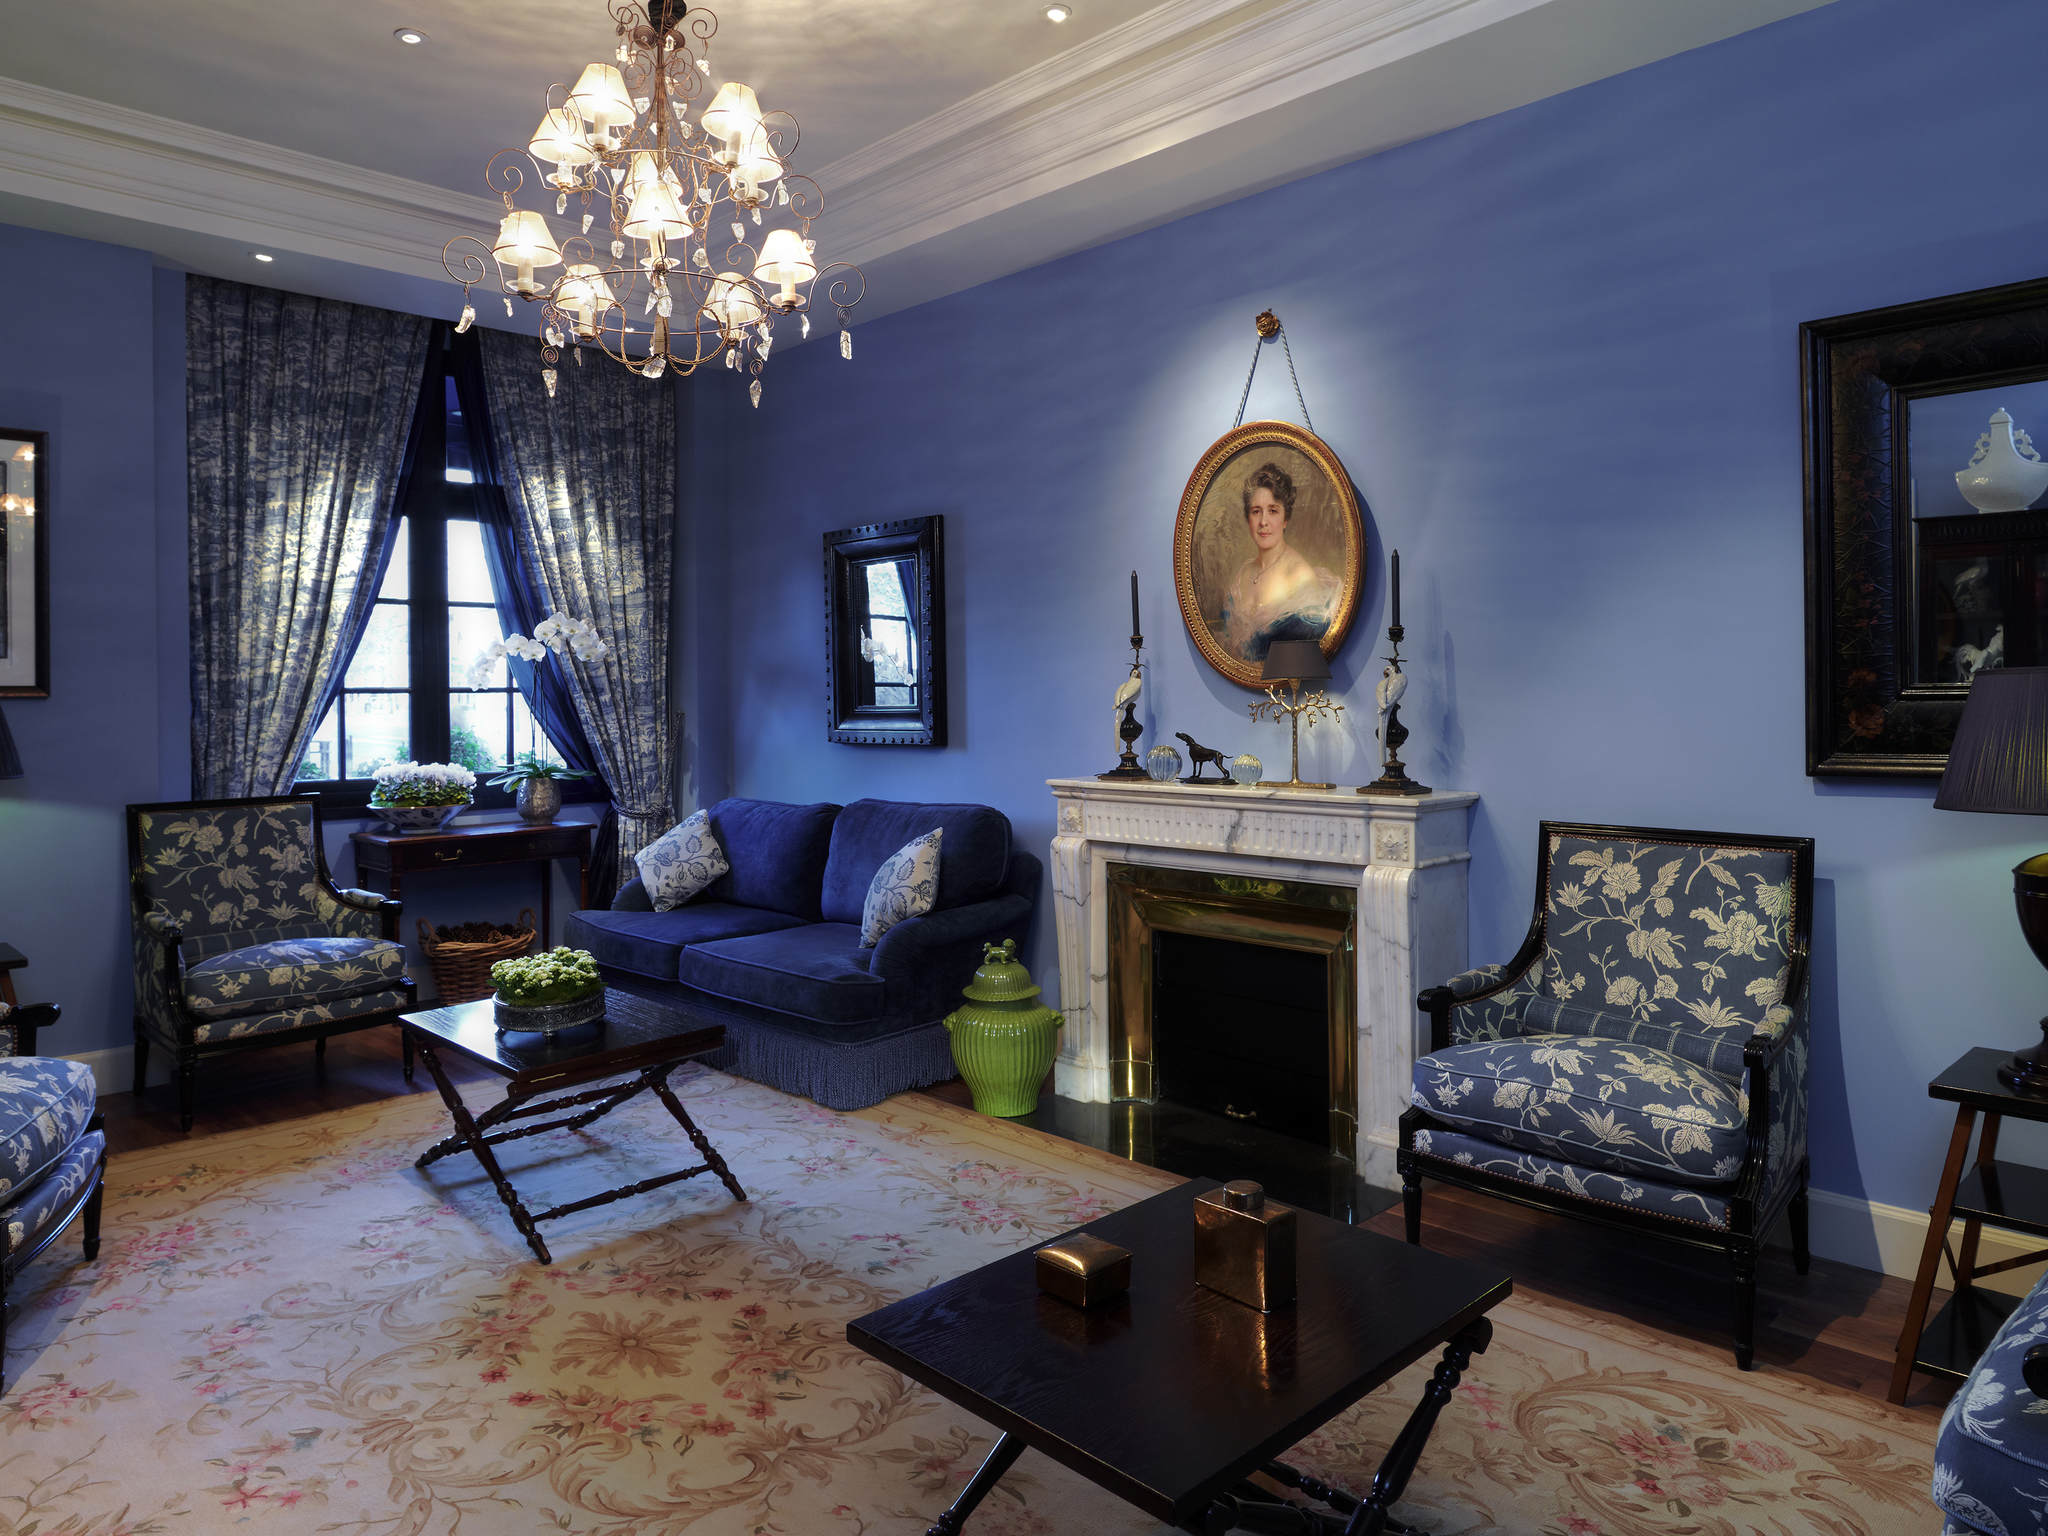 hotel in lyon hotel le royal lyon mgallery by sofitel. Black Bedroom Furniture Sets. Home Design Ideas